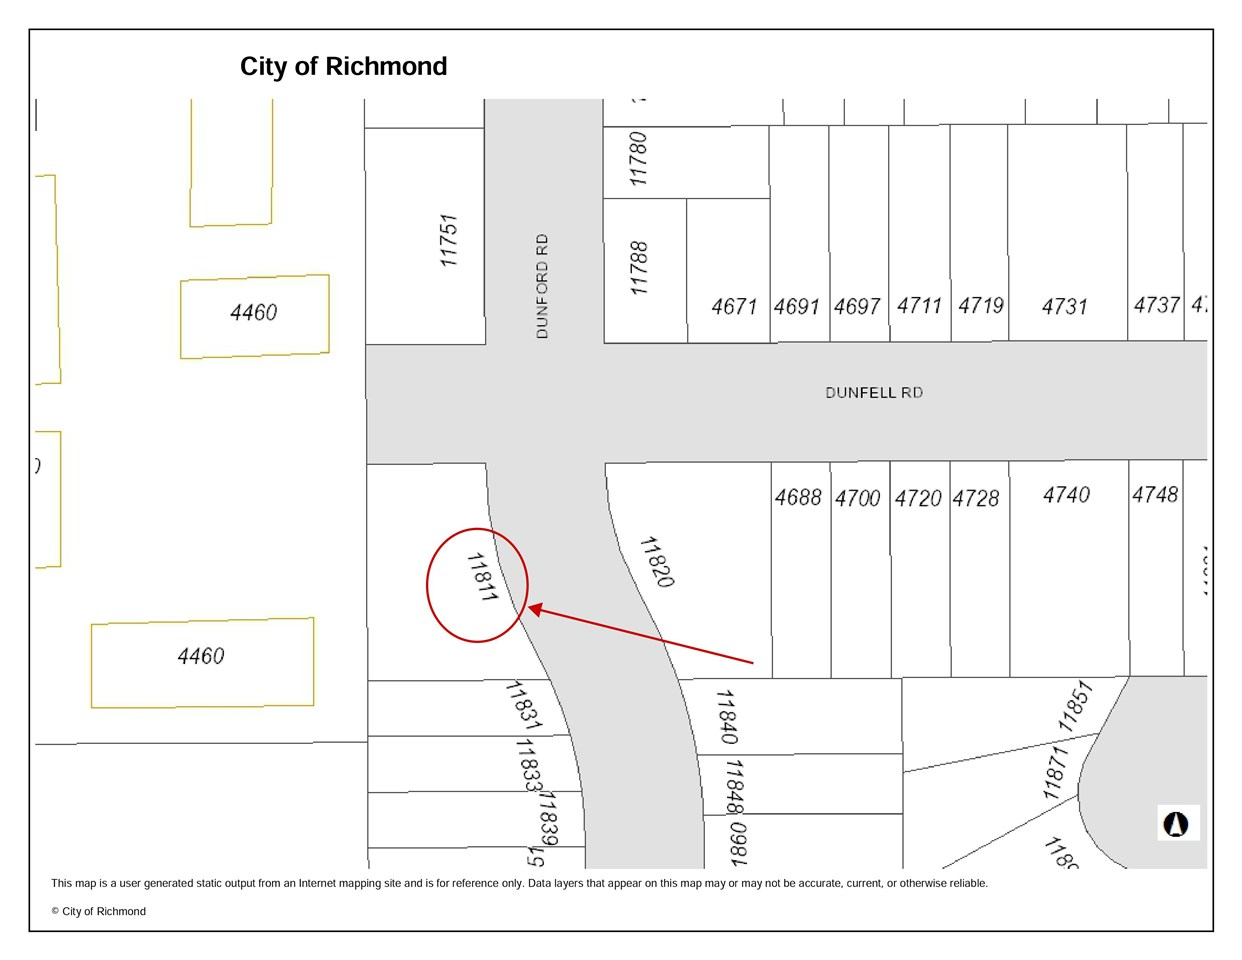 BUILDER & INVESTOR ALERT! Potential to build 3 detached houses and subdivide to 3 lots. Or hold to build in future - long term tenant with high rental income. Call today to review the plans.